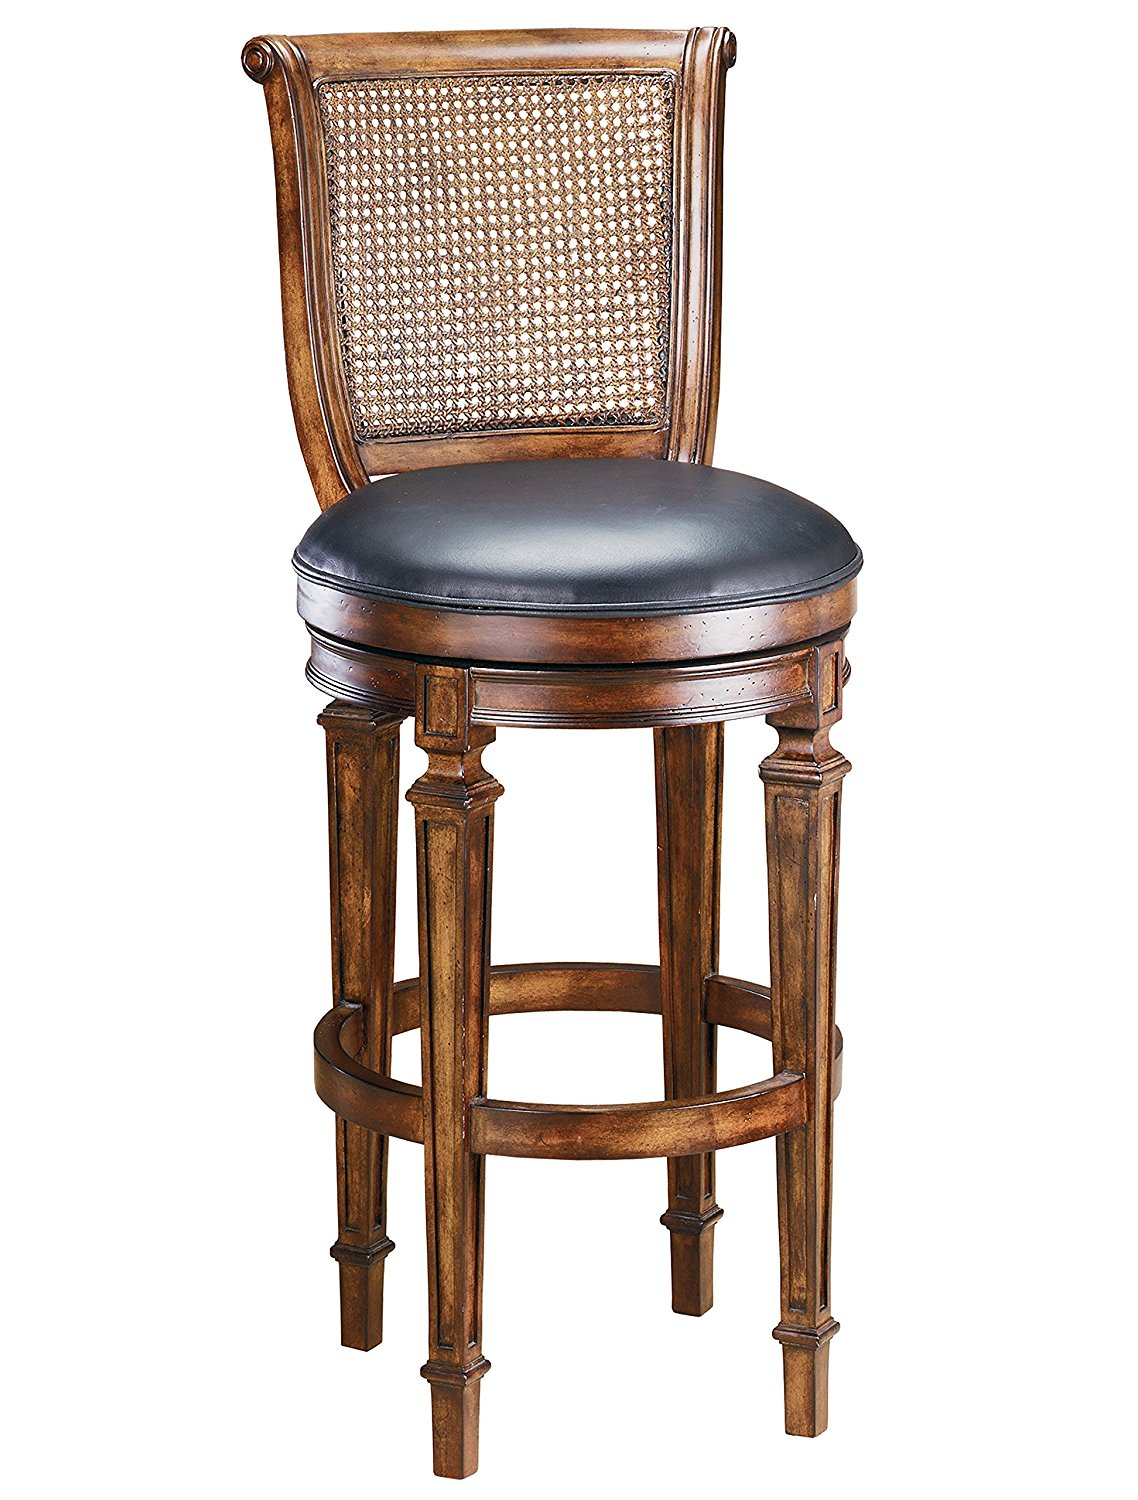 Hillsdale 61909 Dalton Cane Back Bar Stool, Distressed Cherry Finish